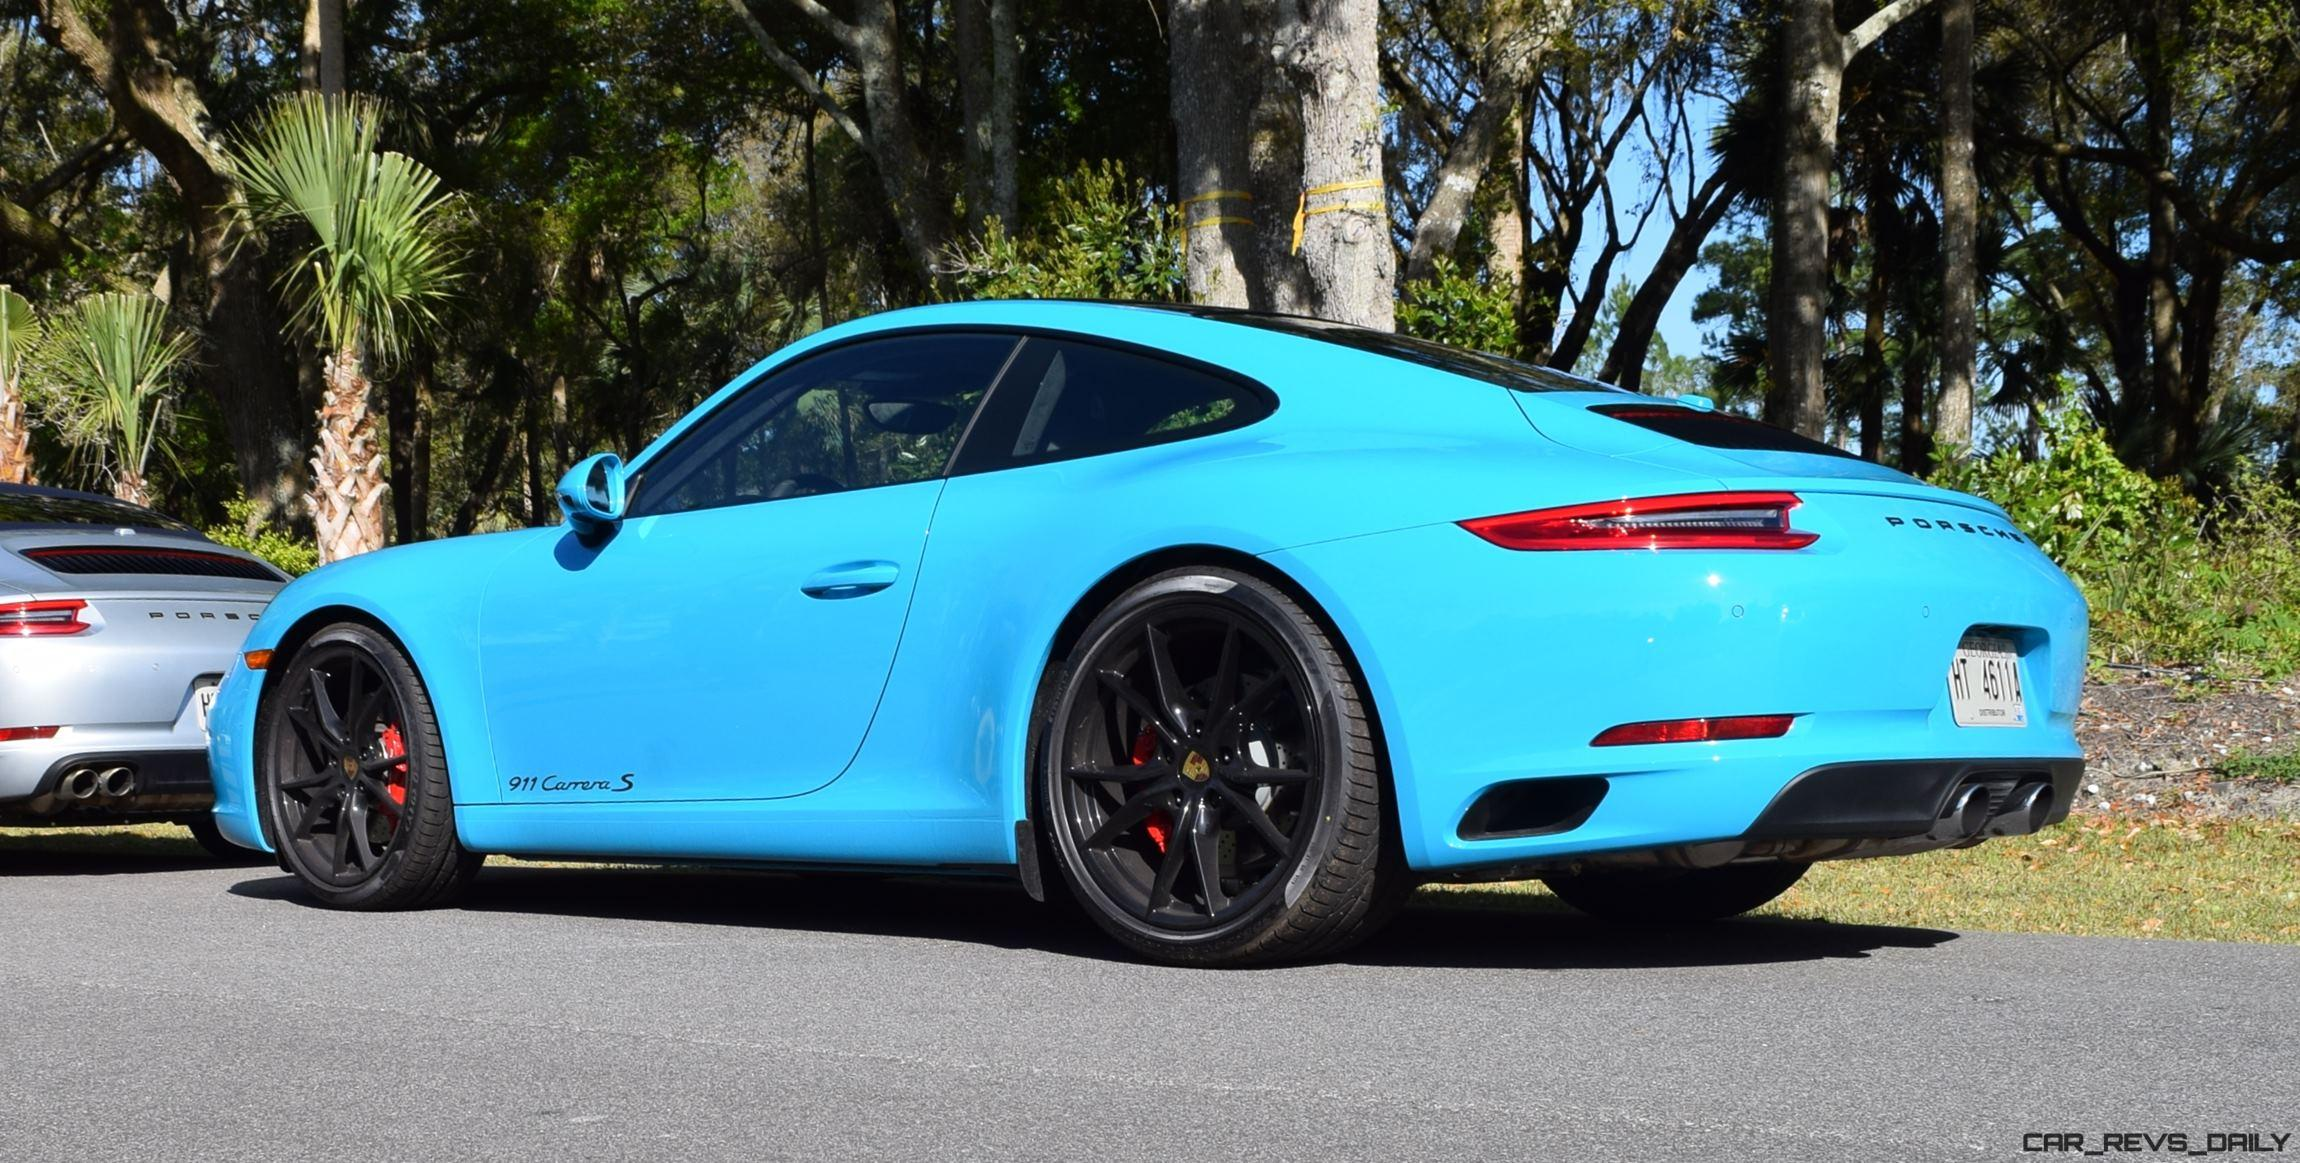 porsche cayman yellow 2014 with 2017 Porsche 911 Miami Blue on 100565533 2017 Porsche 718 Cayman Racing Yellow additionally 17 additionally 2017 Porsche 718 Cayman Pdk Automatic Review further 18 together with 11.